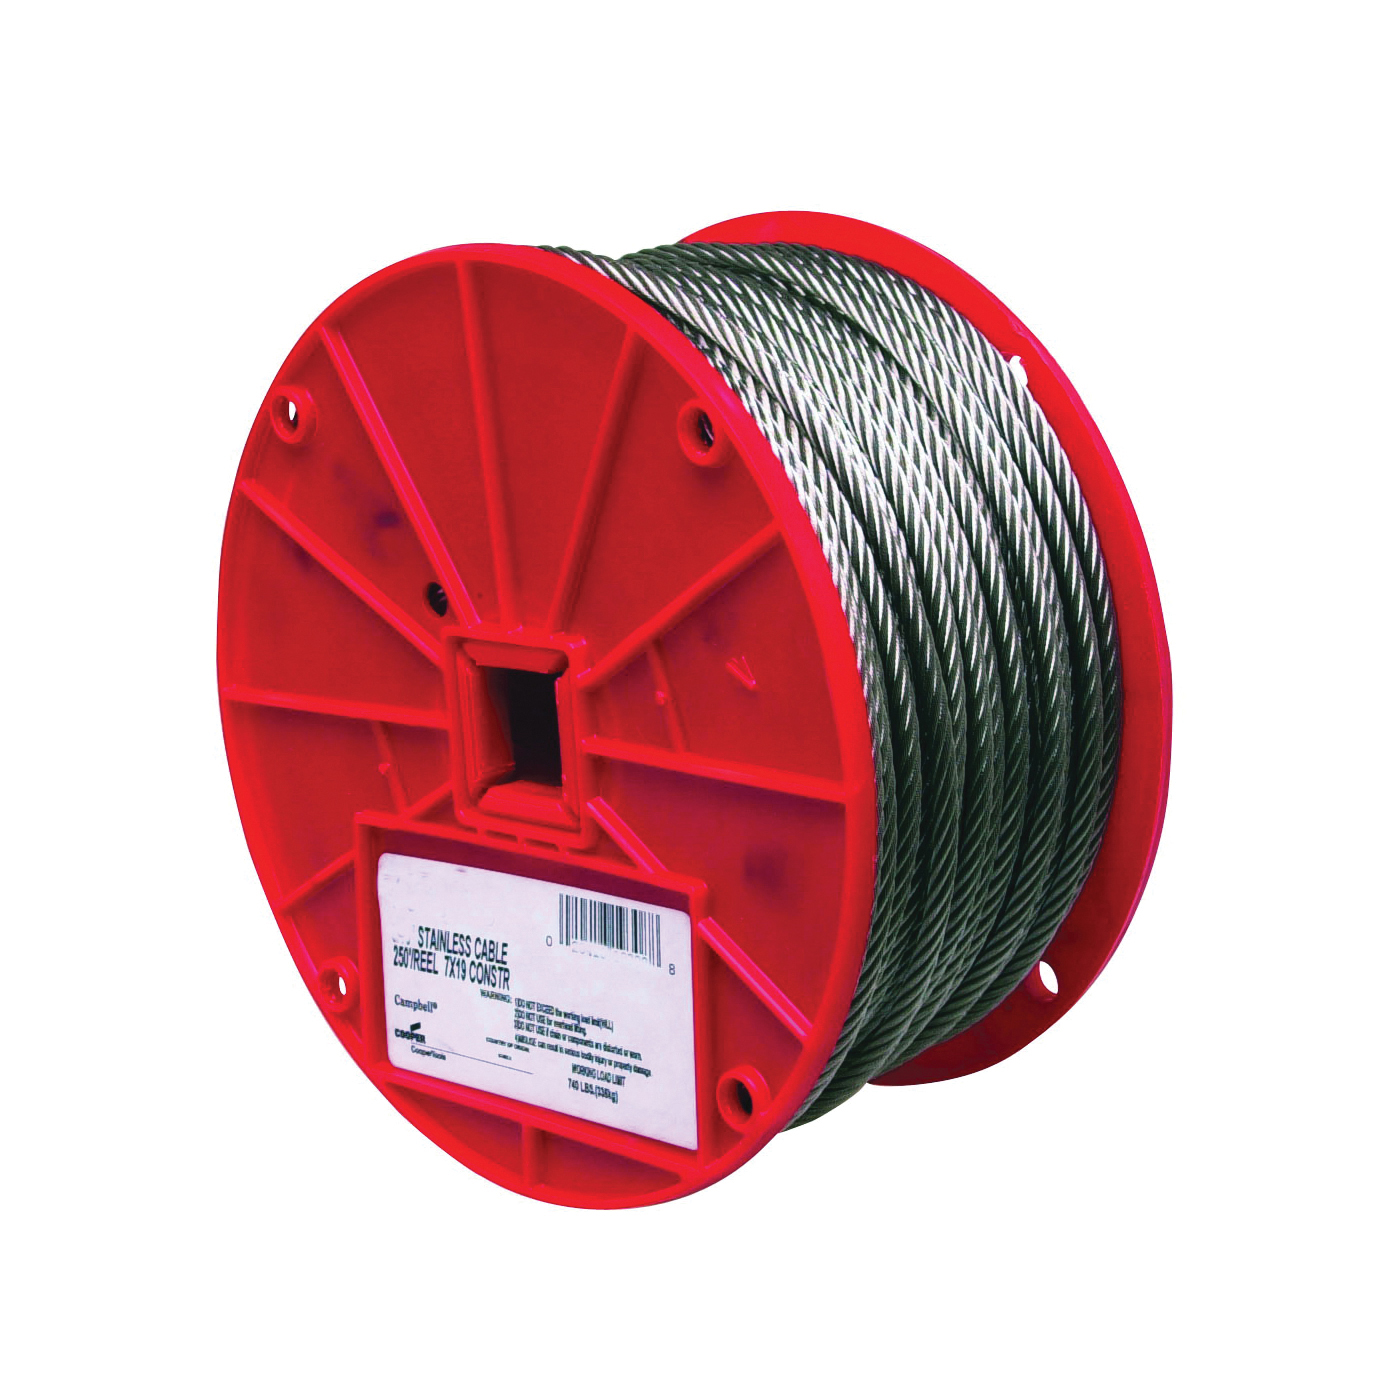 Picture of Campbell 7000626 High-Strength Cable, 3/16 in Dia, 250 ft L, 740 lb Working Load, Stainless Steel, Reel